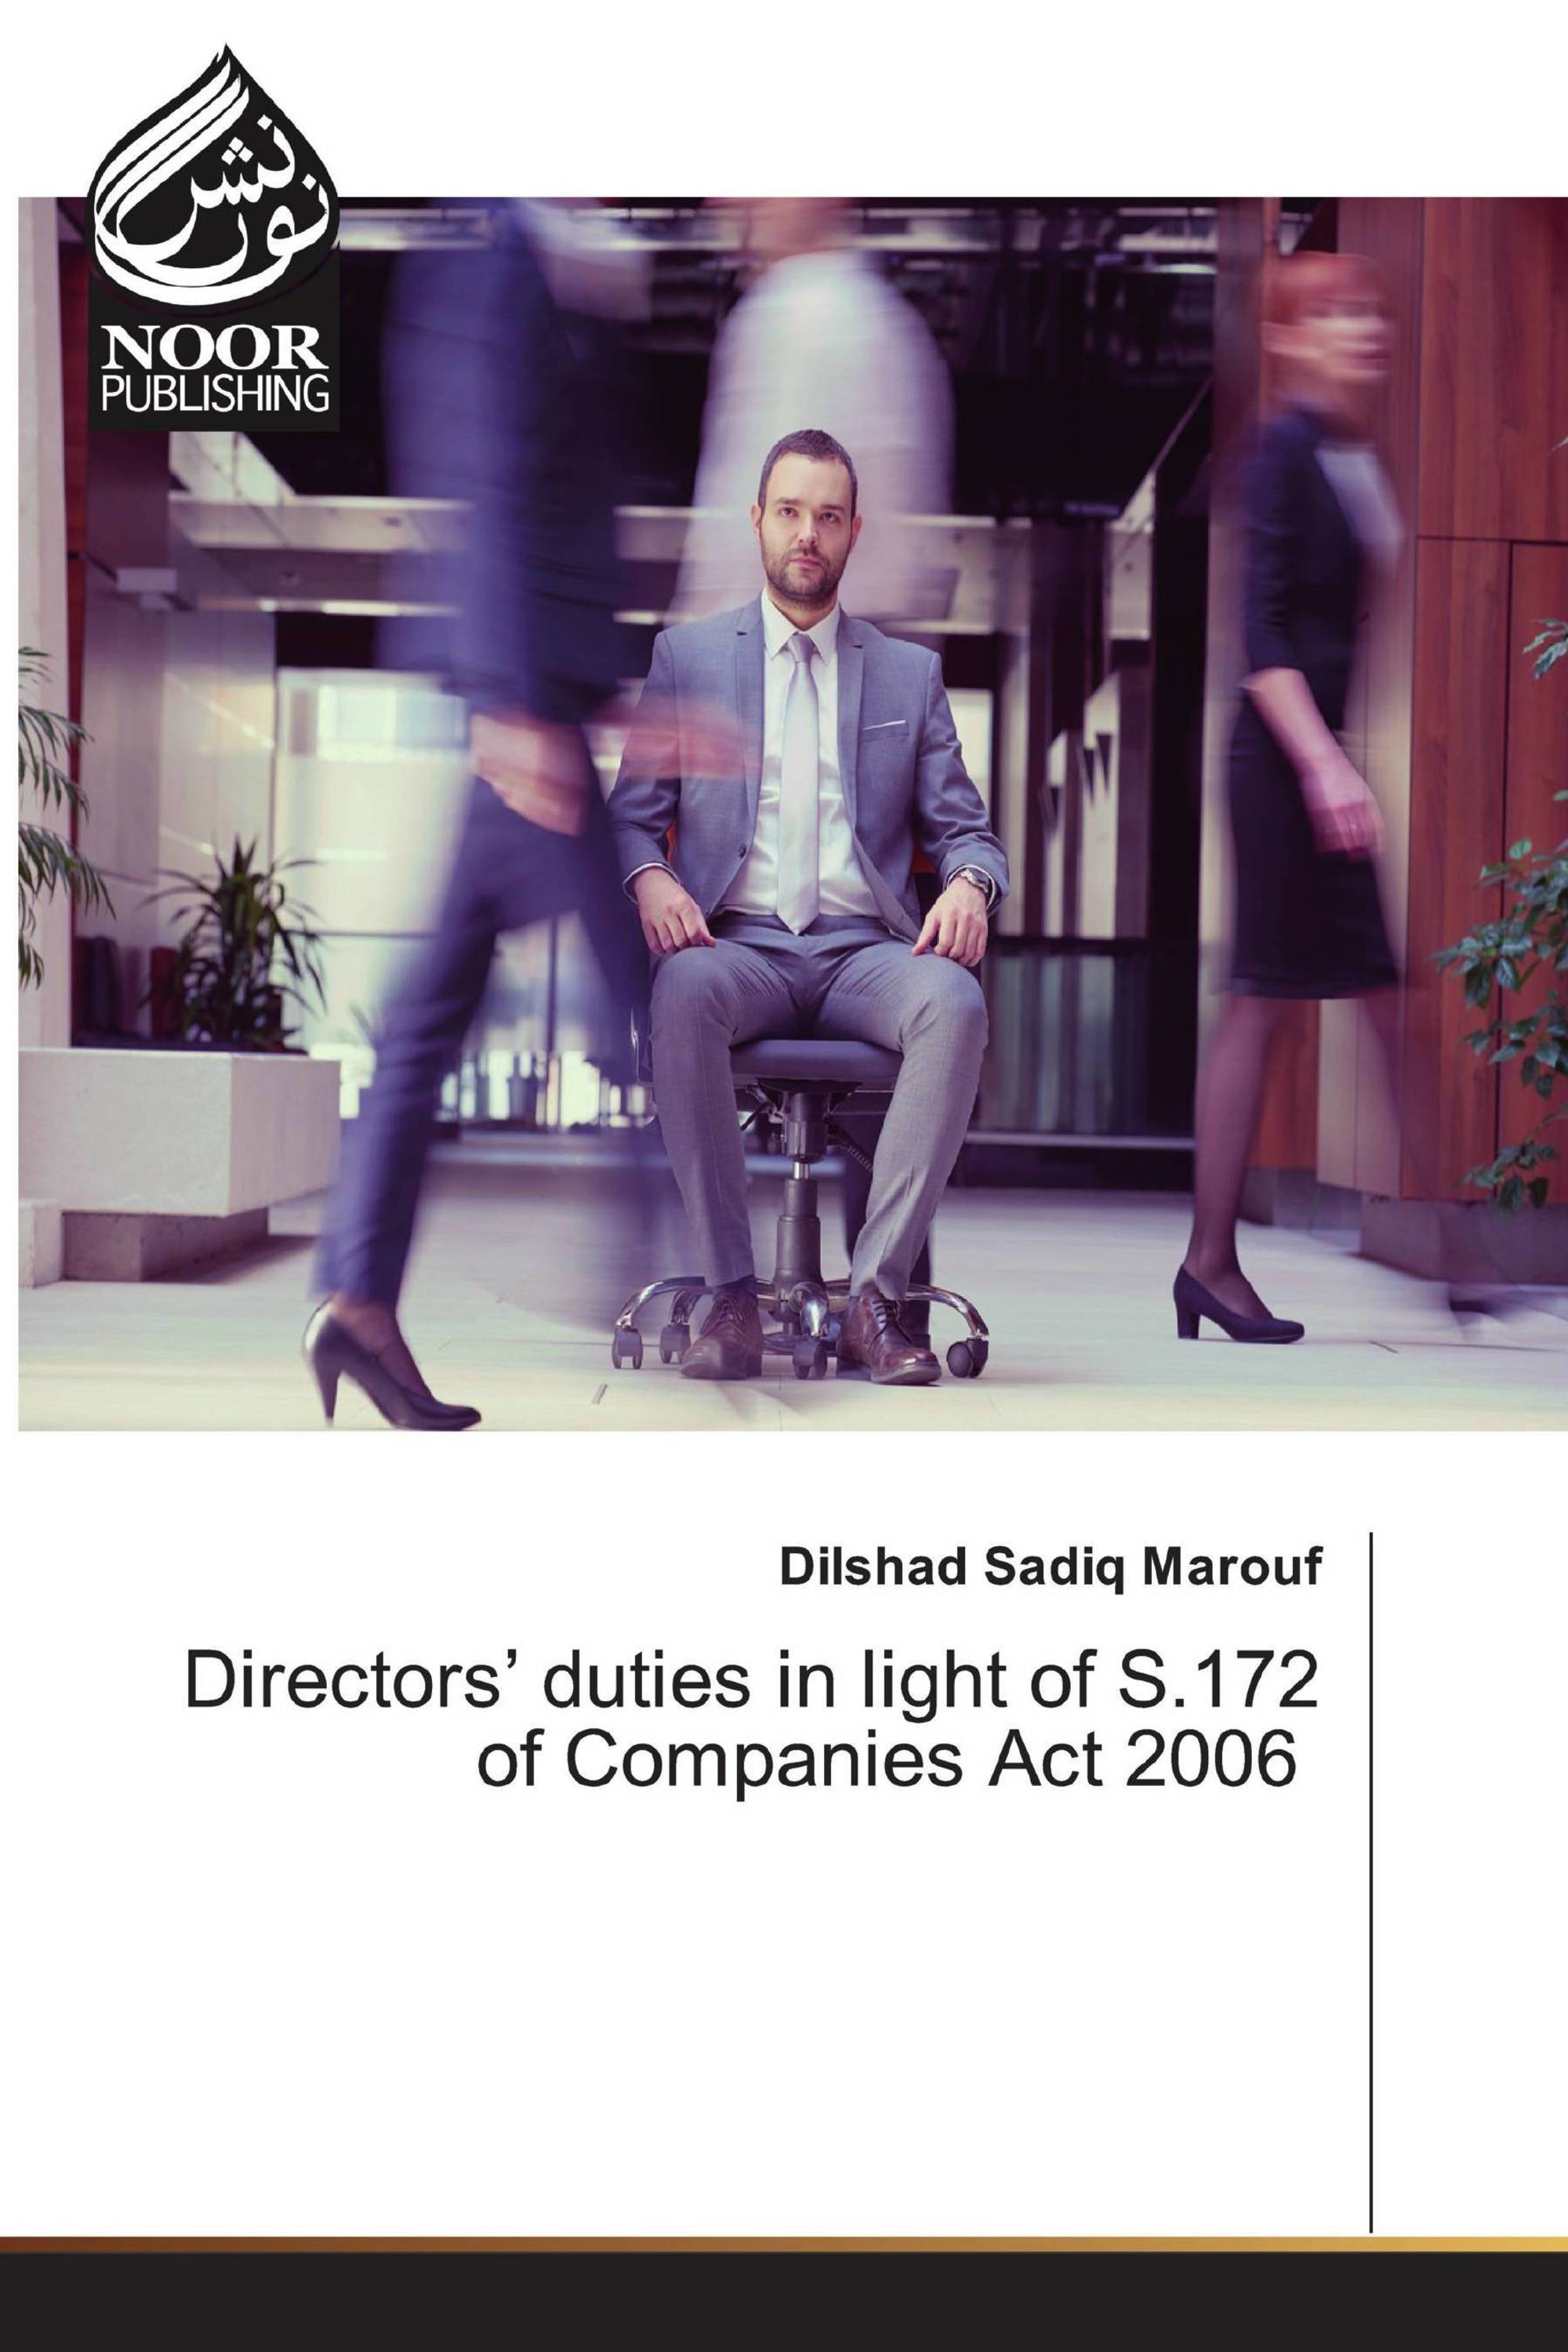 Directors' duties in light of S.172 of Companies Act 2006